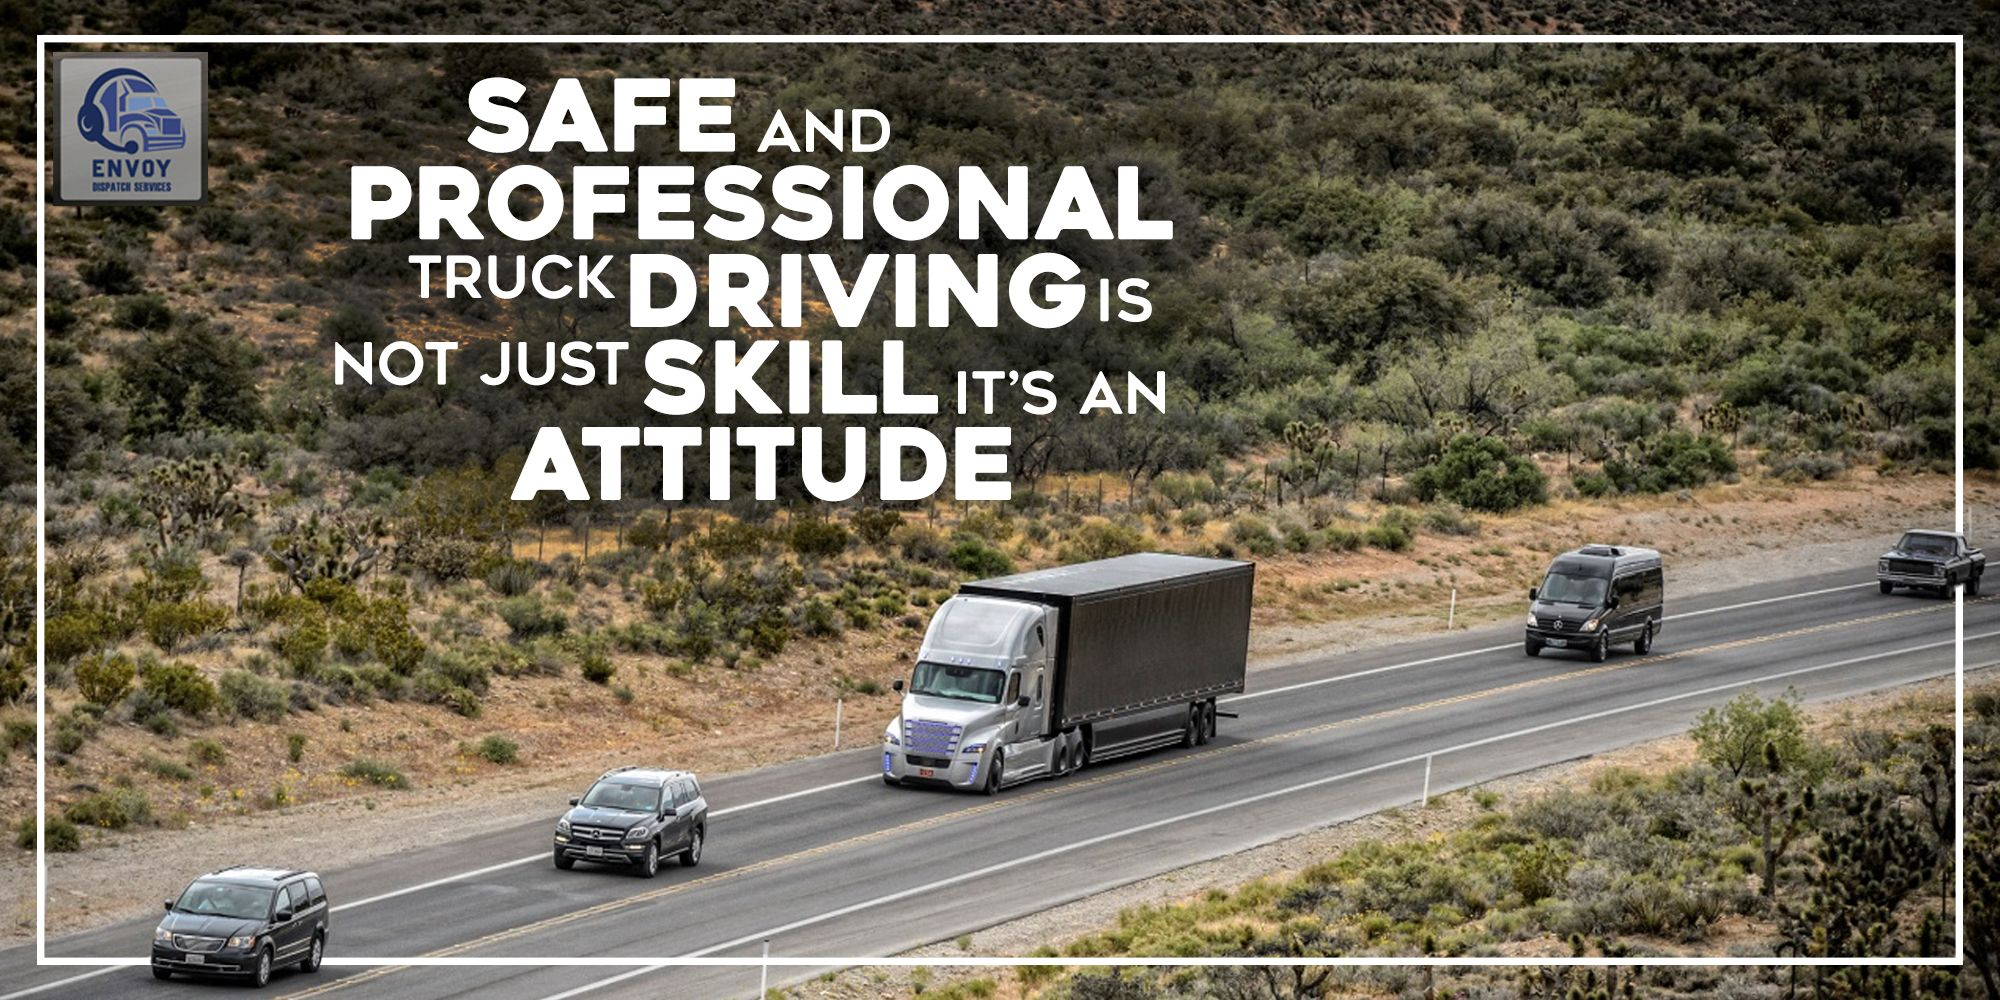 Safe and Professional Truck Driving is Not Just Skill It's